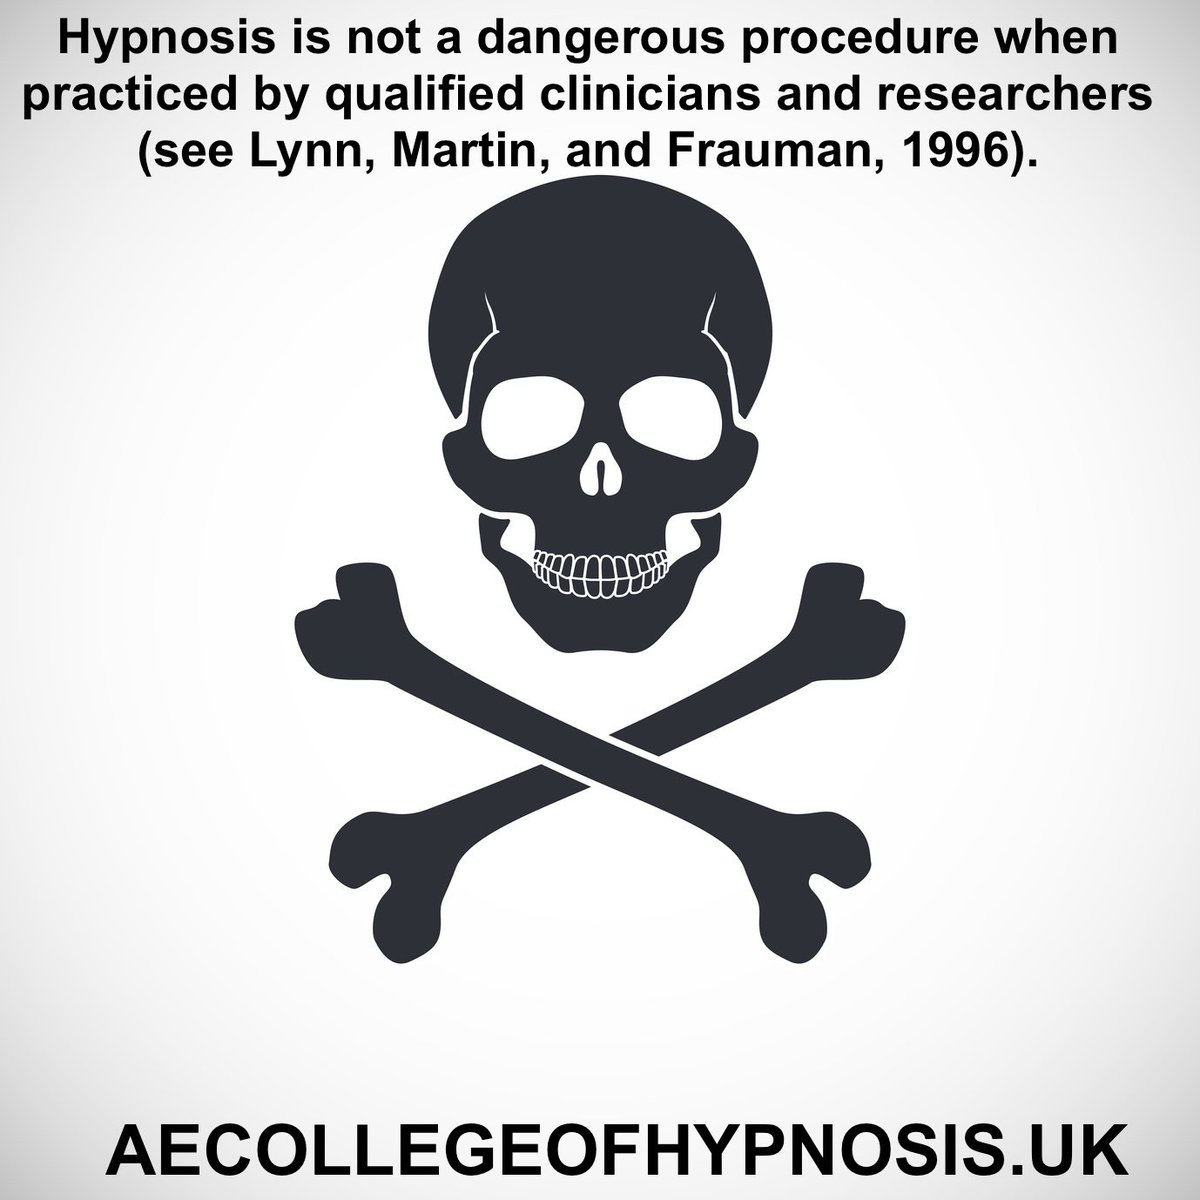 Contrary to many inaccurate media portrayals & misconception, #hypnosis is not a dangerous procedure. Do share. https://t.co/DOlRvFqavf